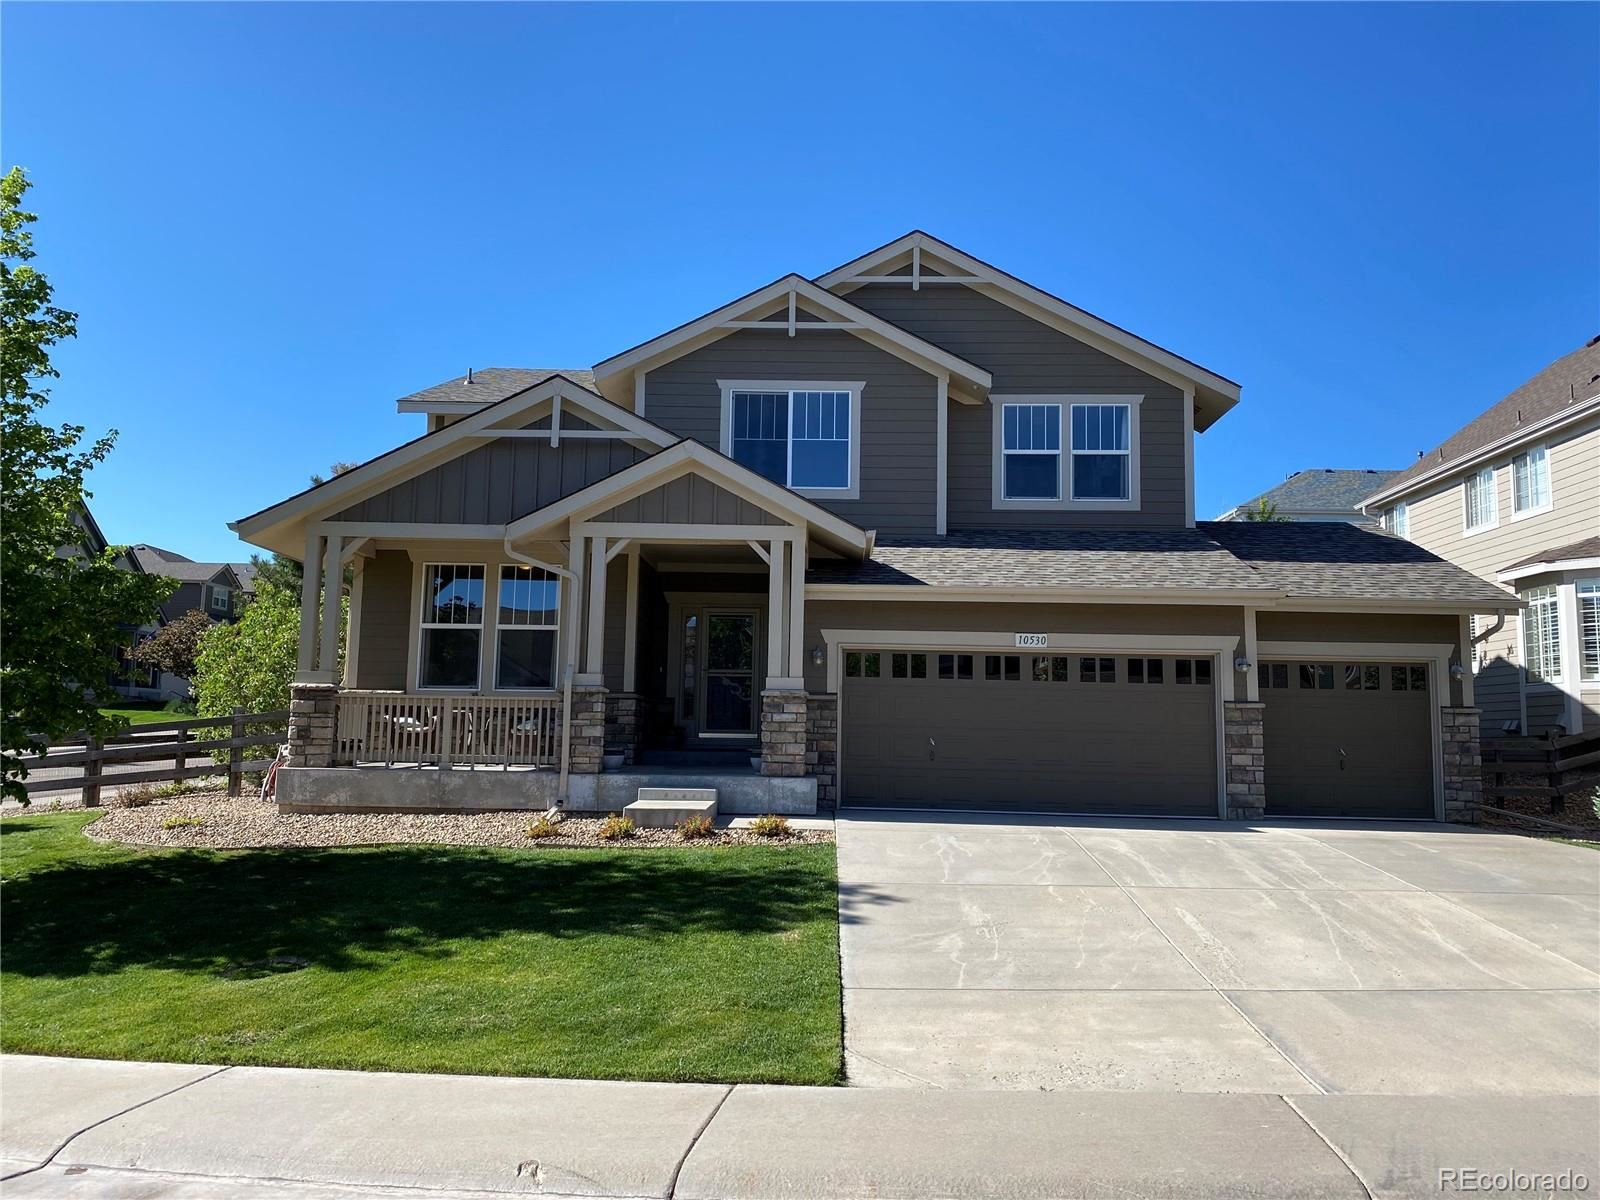 10530  Wildhorse Lane, Littleton, CO 80125 - #: 8360191